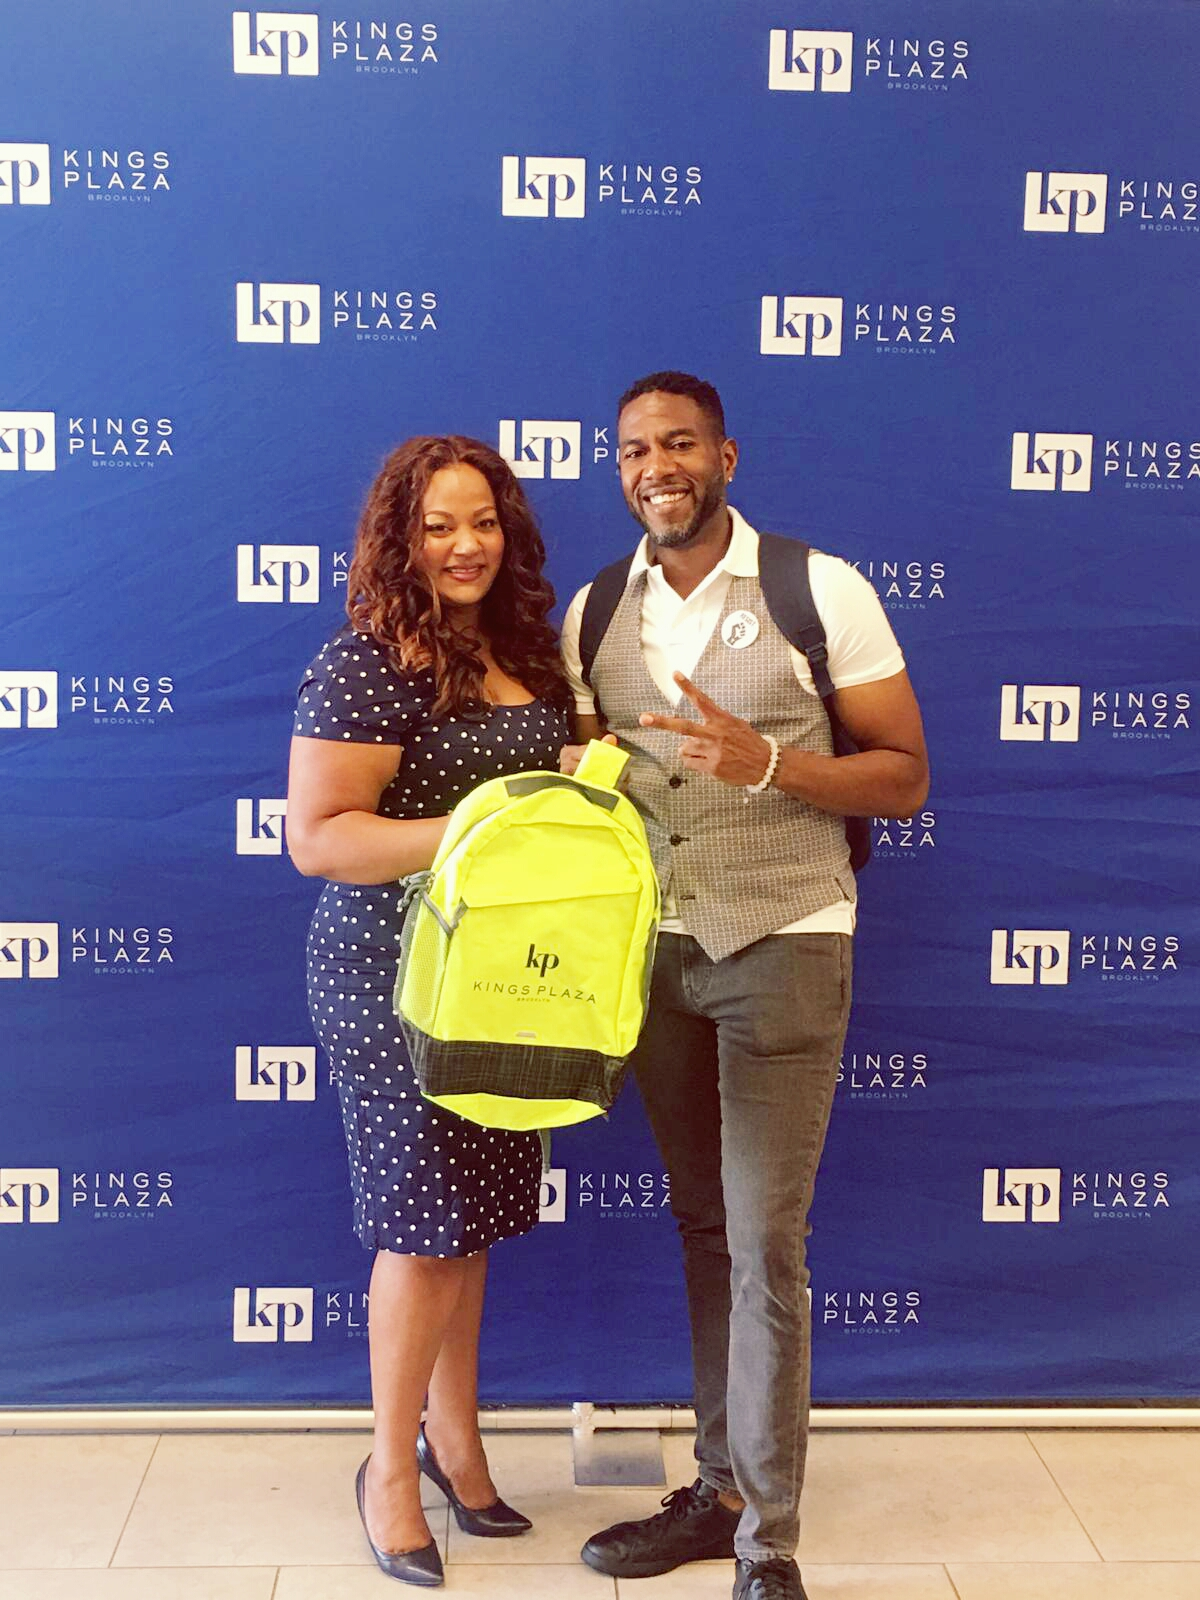 Collecting Backpacks for students at Kings Plaza's Back to School Backpack Giveaway with Public Advocate Jumaane Williams.